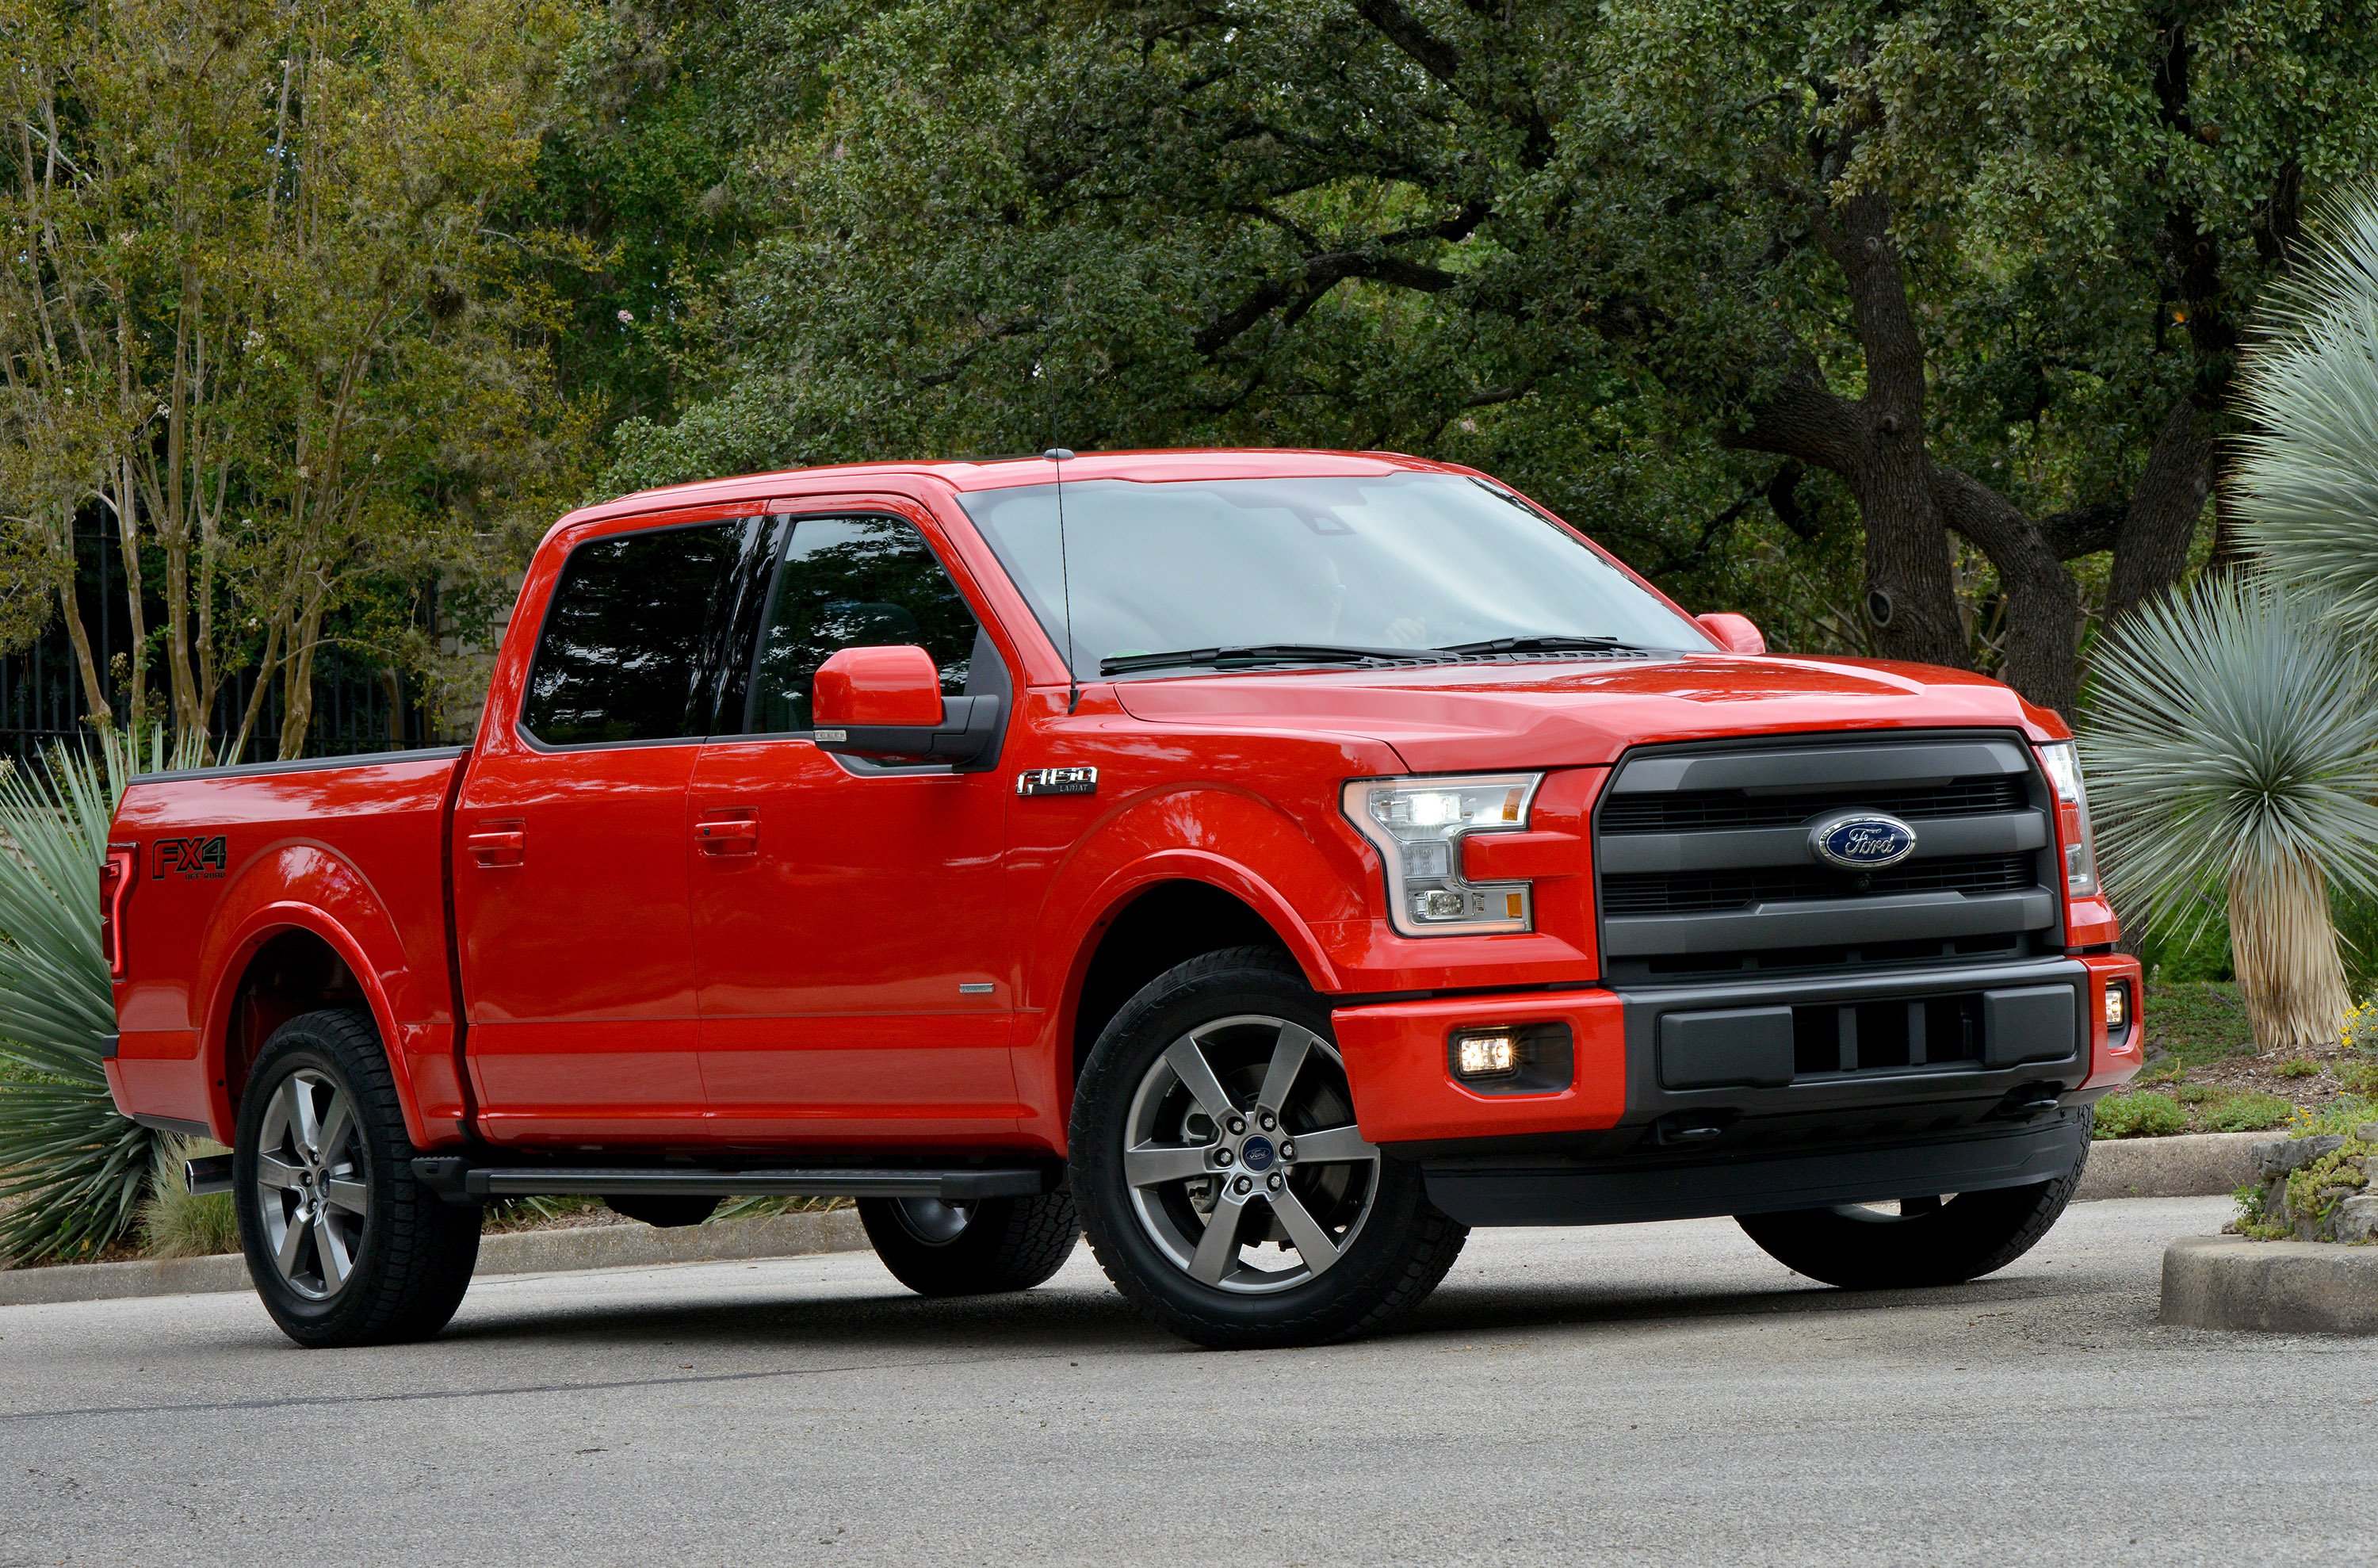 2015 Ford F-150 XLT SuperCrew pickup f150 wallpaper ...